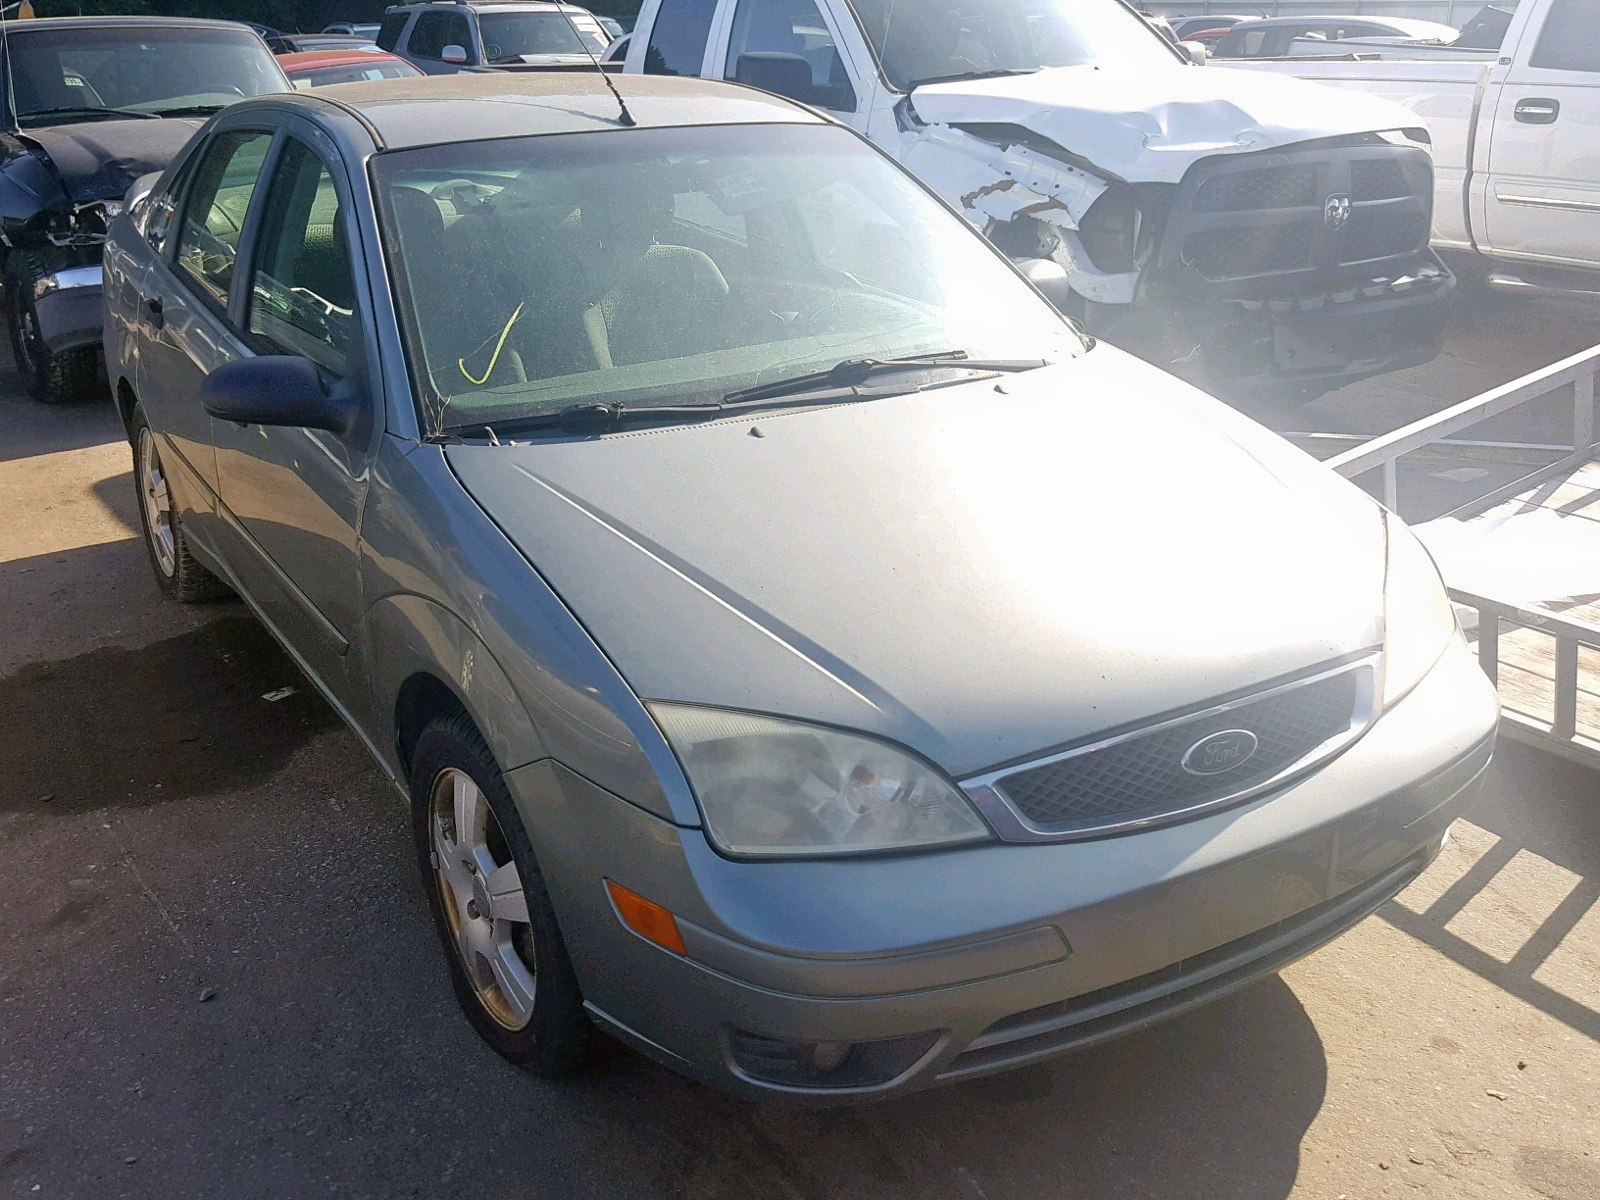 2005 Ford Focus Zx4 2.0L Left View